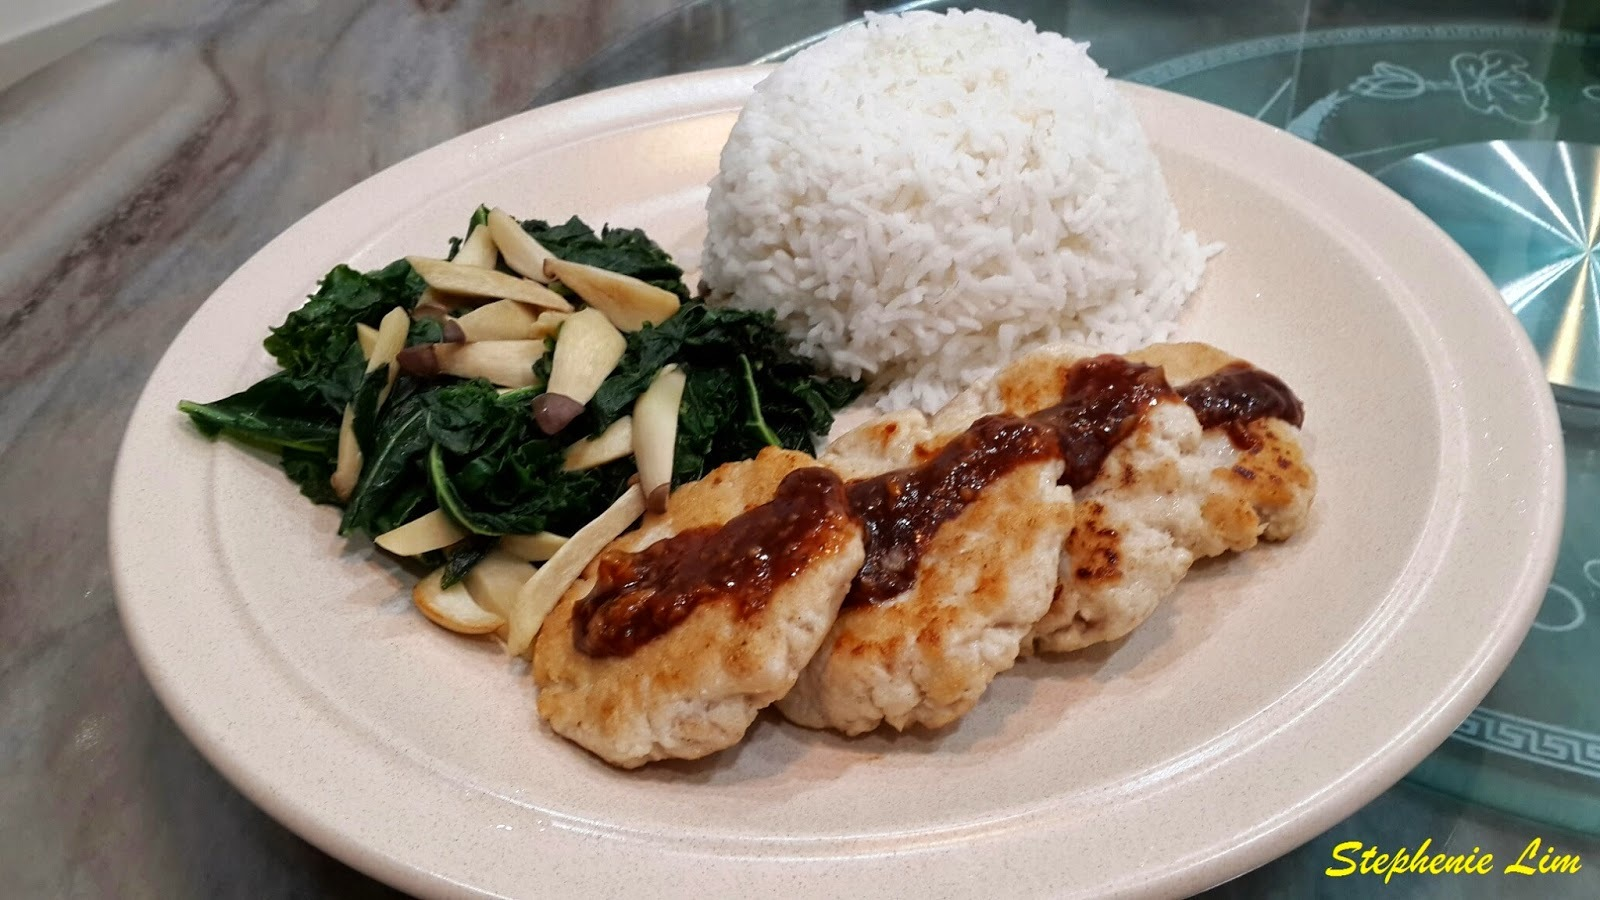 姜茸烧烤酱煎鱼饼和羽衣甘蓝菜炒菇饭 (Pan Fried Fish Cakes with Ginger BBQ Sauce and Sauteed Kale Mushroom Rice)